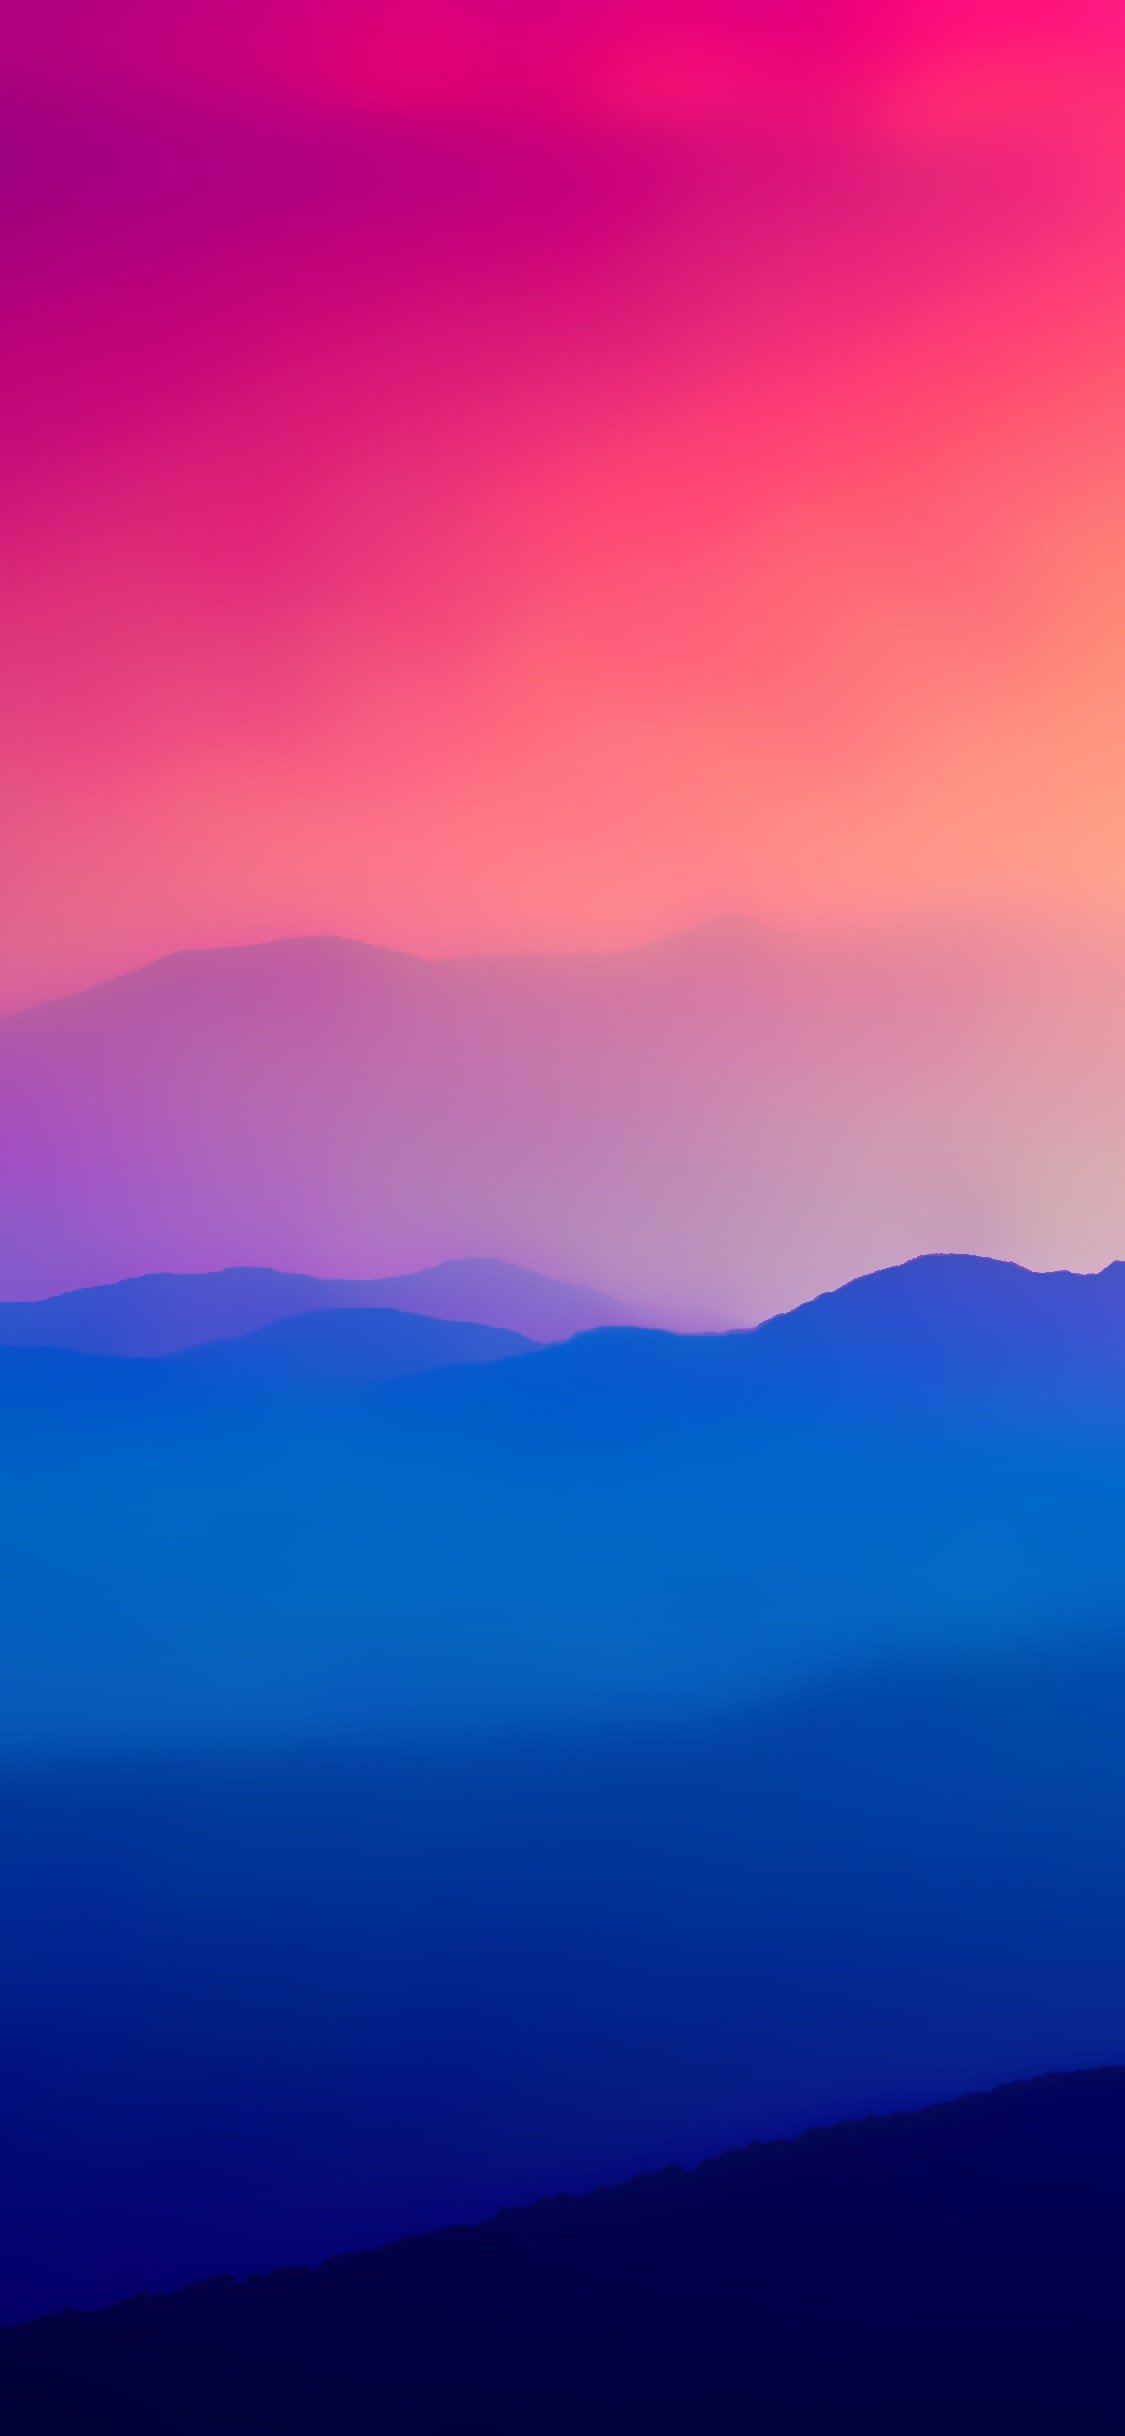 iphone x 2018 wallpapers